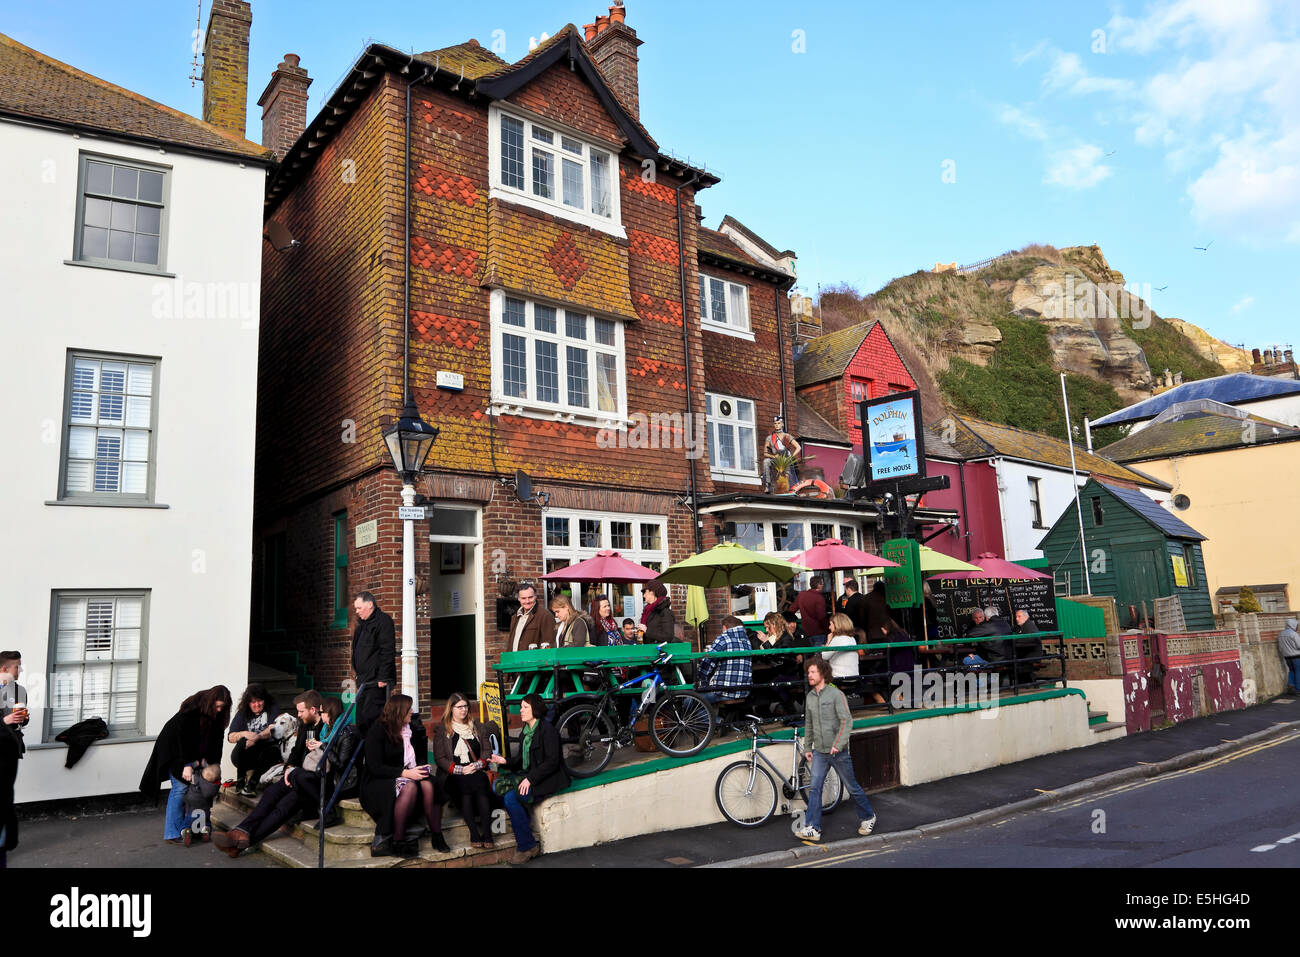 9523. The Dolphin Pub, Rock a Nore, Hastings, East Sussex - Stock Image